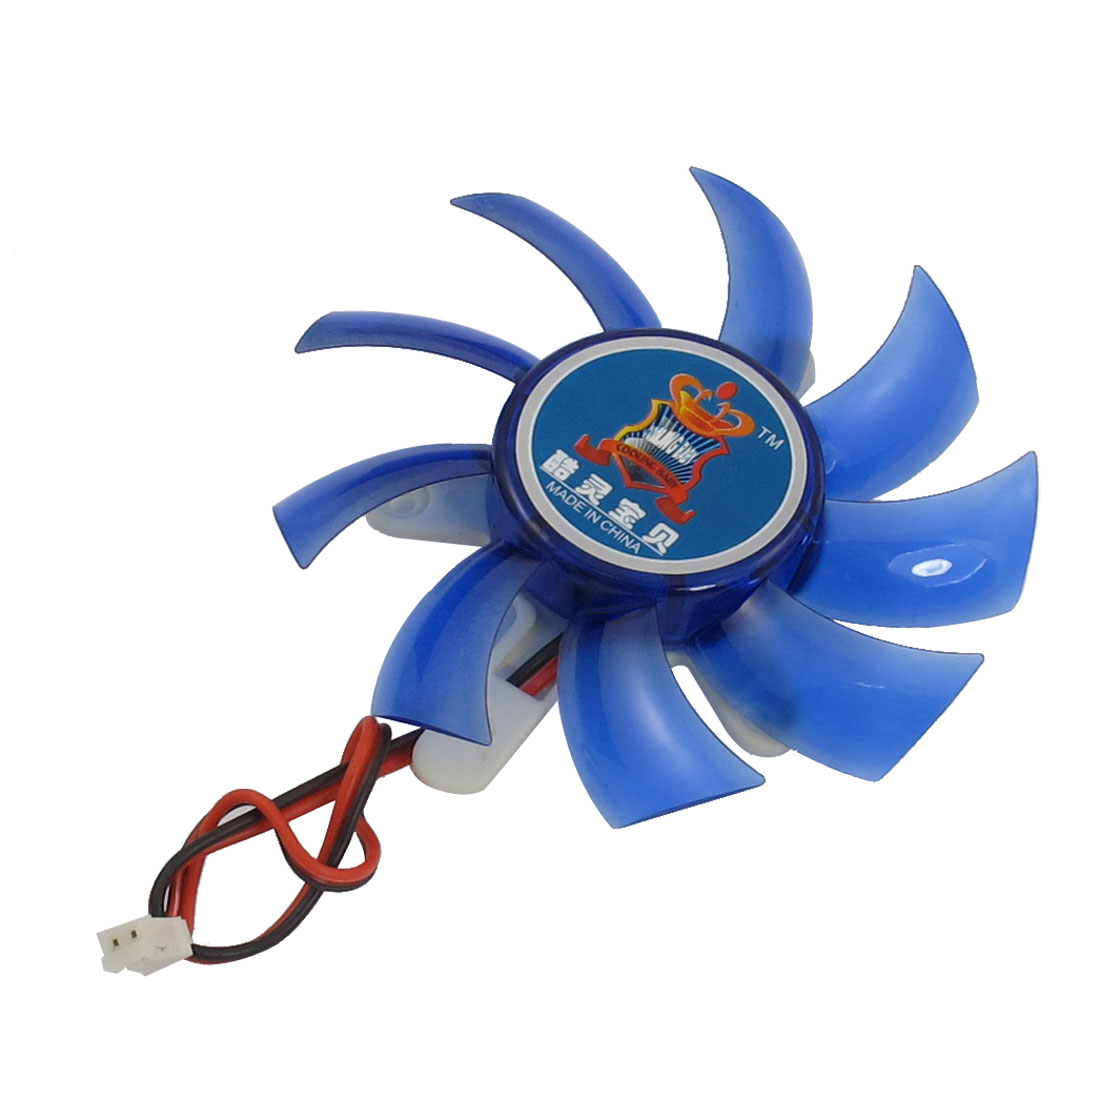 Blue Plastic Flabellums VGA Cooler Video Card Cooling Fan 75mm 12VDC